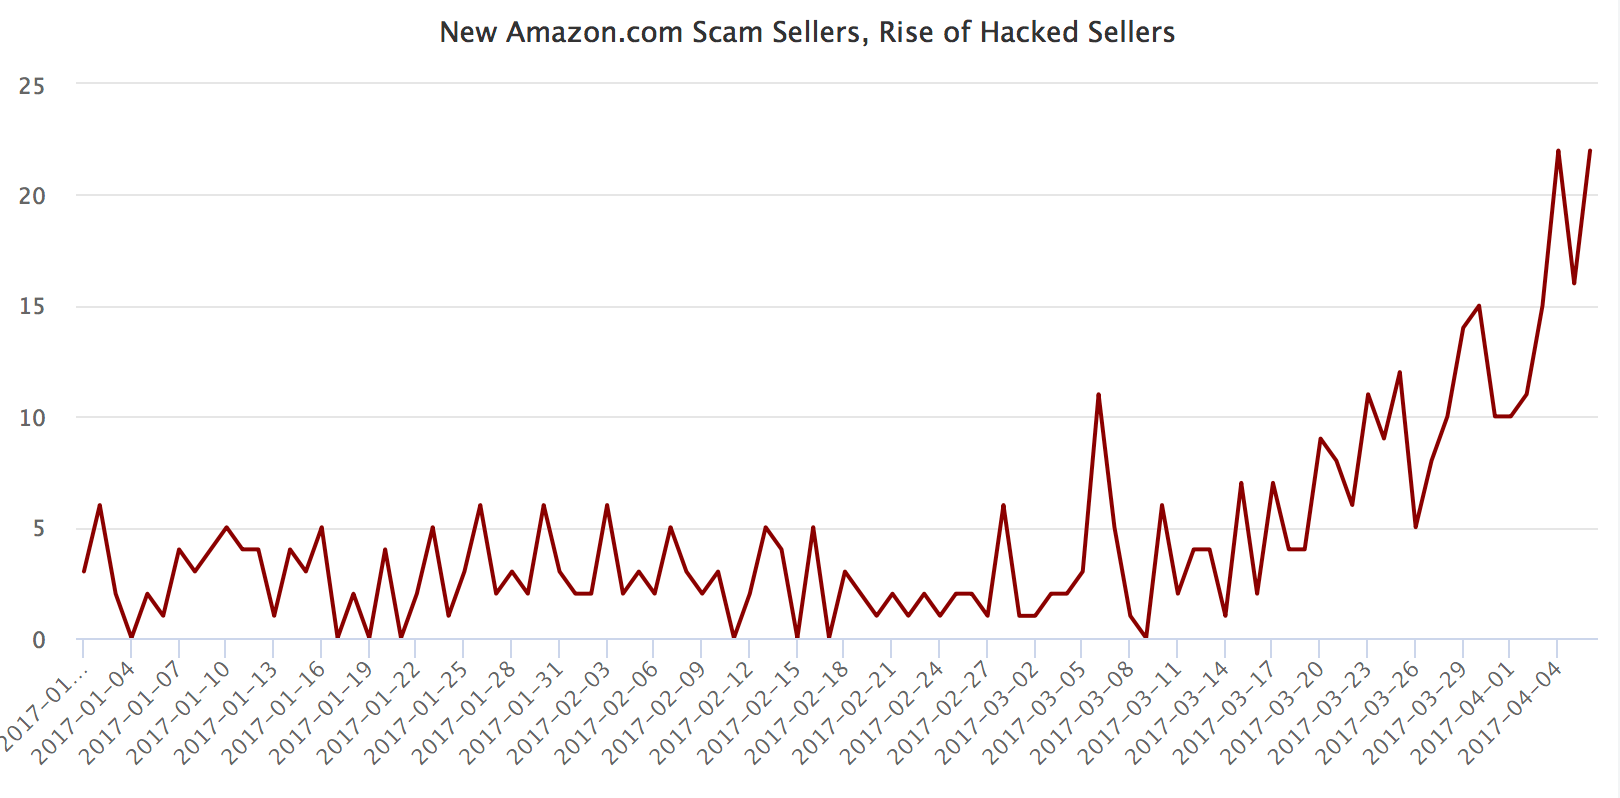 Amazon.com rise of hacked sellers